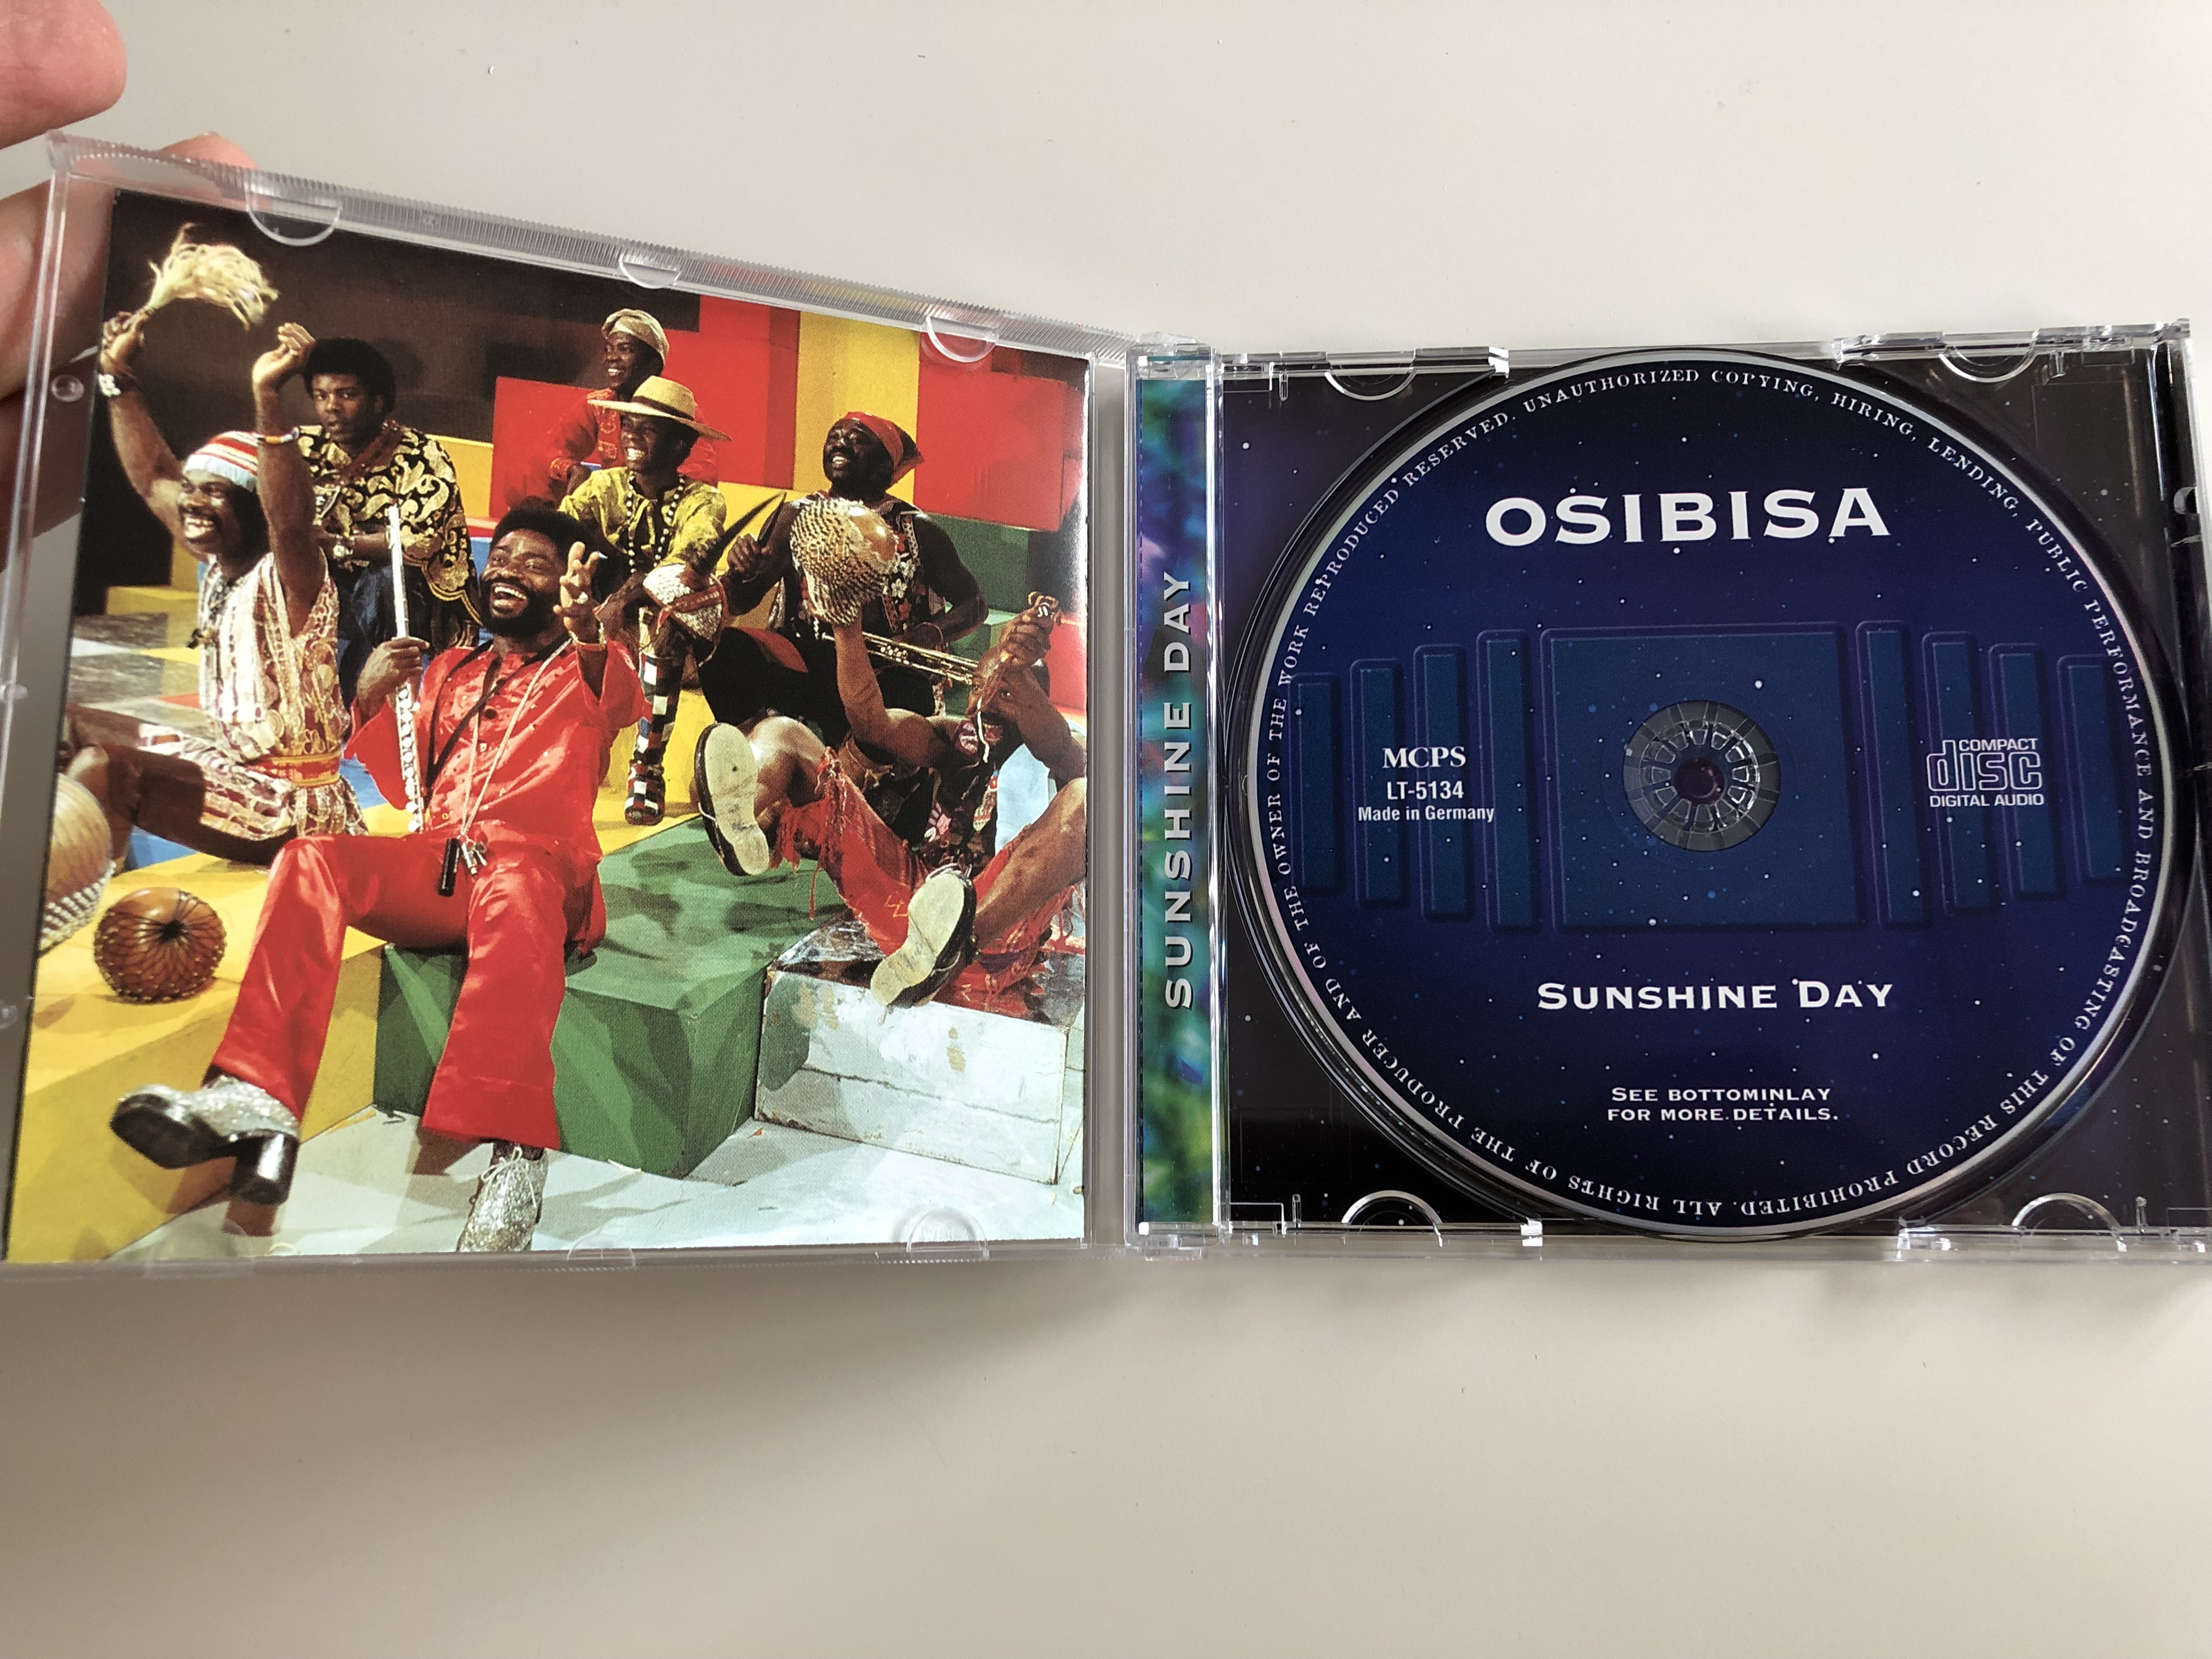 osibisa-sunshine-day-live-concert-welcome-home-ayiko-bia-living-loving-feeling-fire-encore-survival-audio-cd-2000-lt-5134-1-.jpg